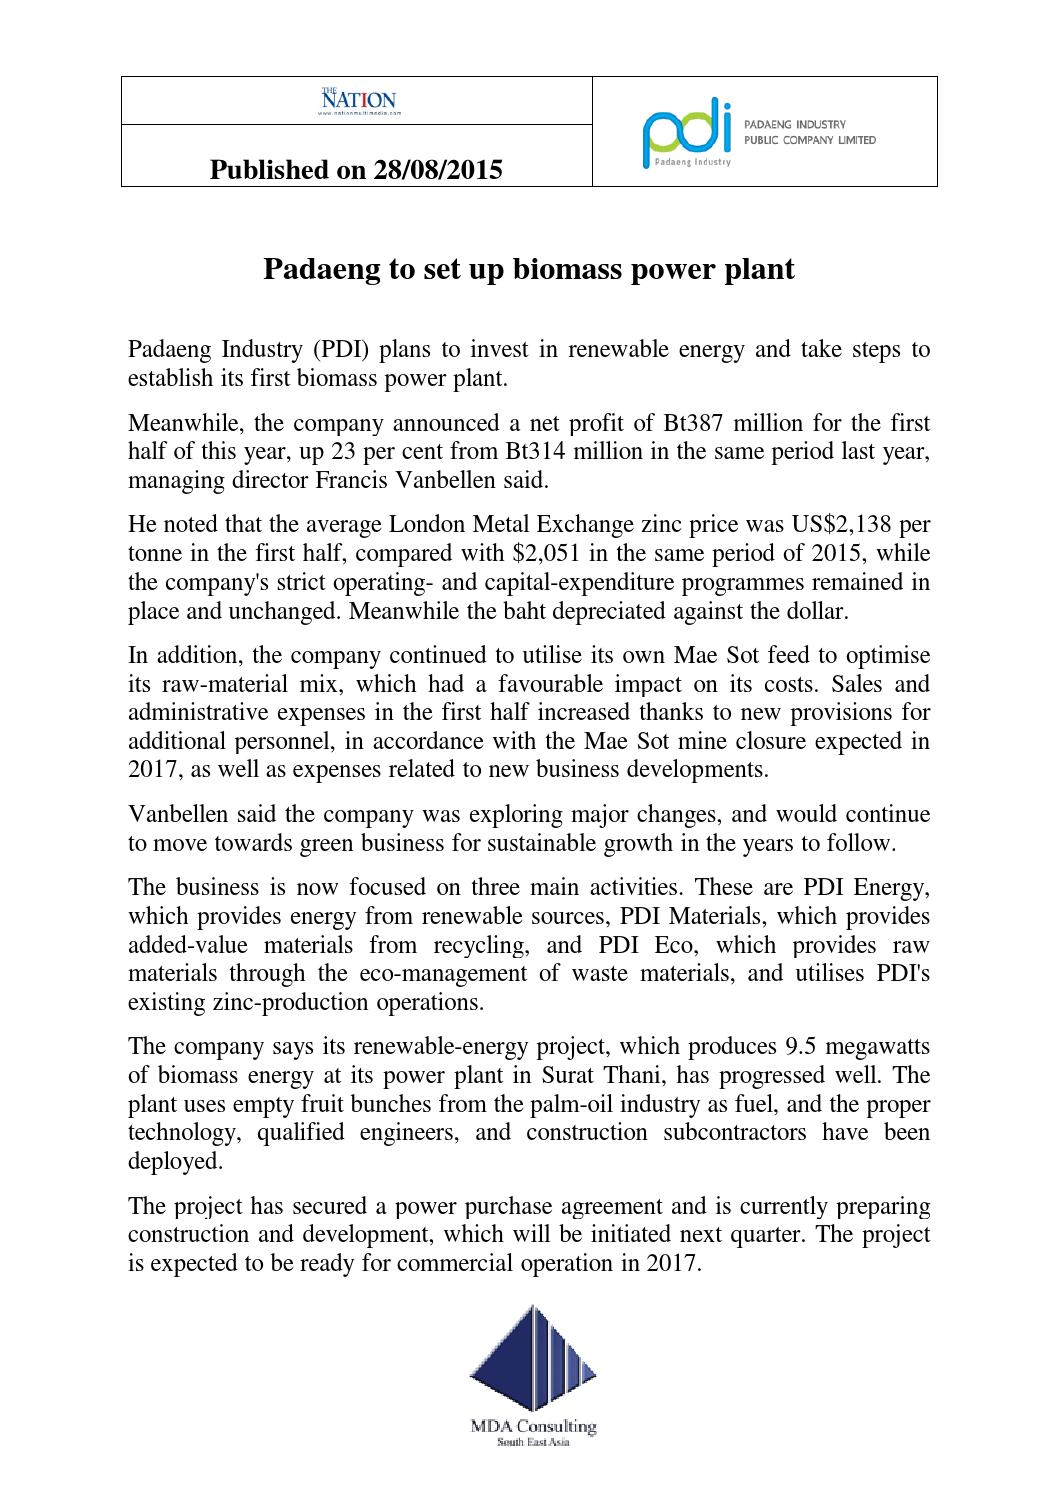 Padaeng to Set Up Biomass Power Plant by MDA Consulting